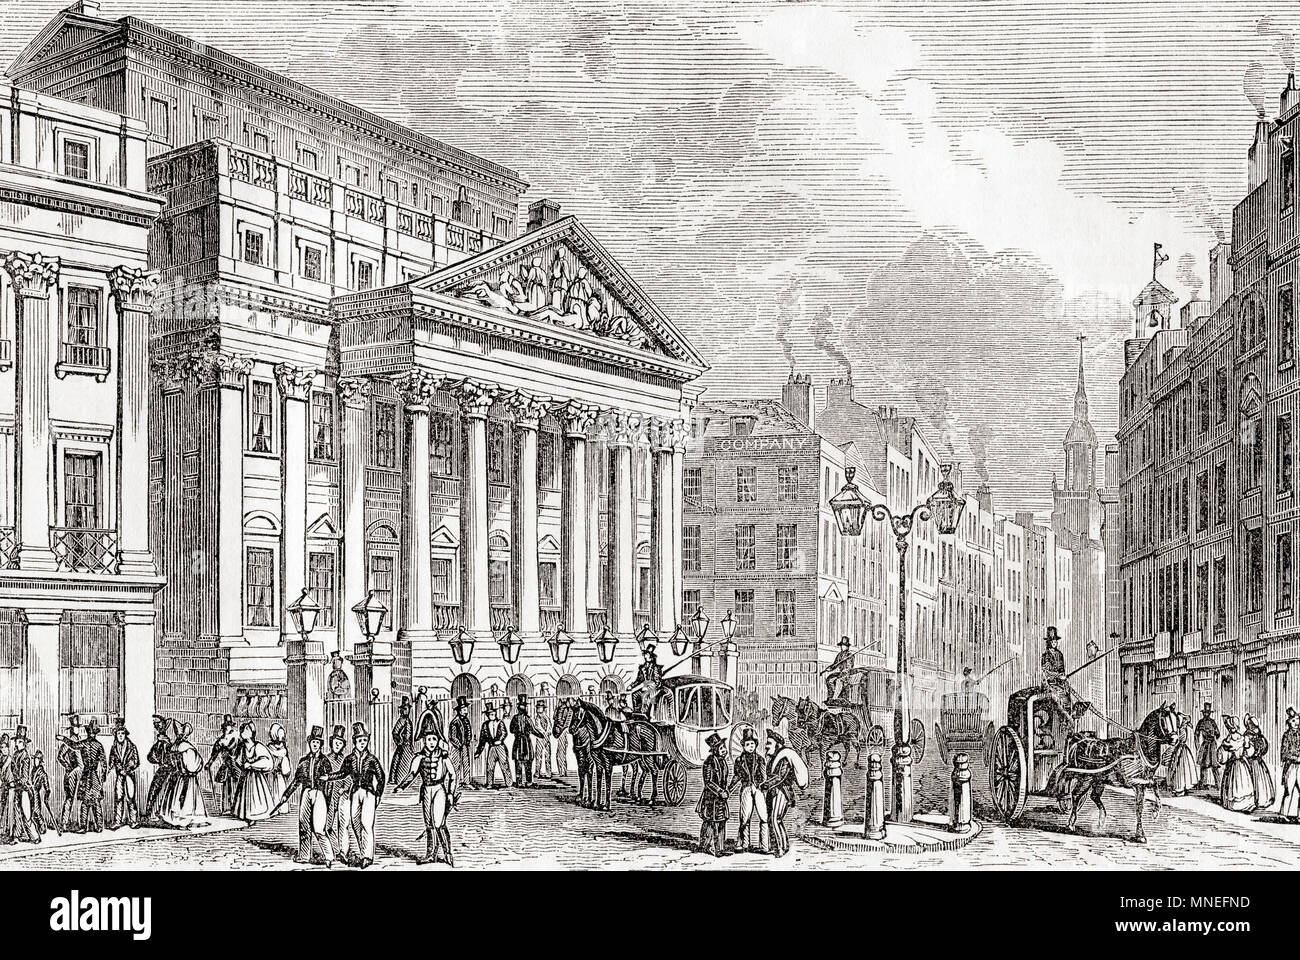 Mansion House, London, England, seen here in the early 19th century.  It is the official residence of the Lord Mayor of London.  From Old England: A Pictorial Museum, published 1847. - Stock Image